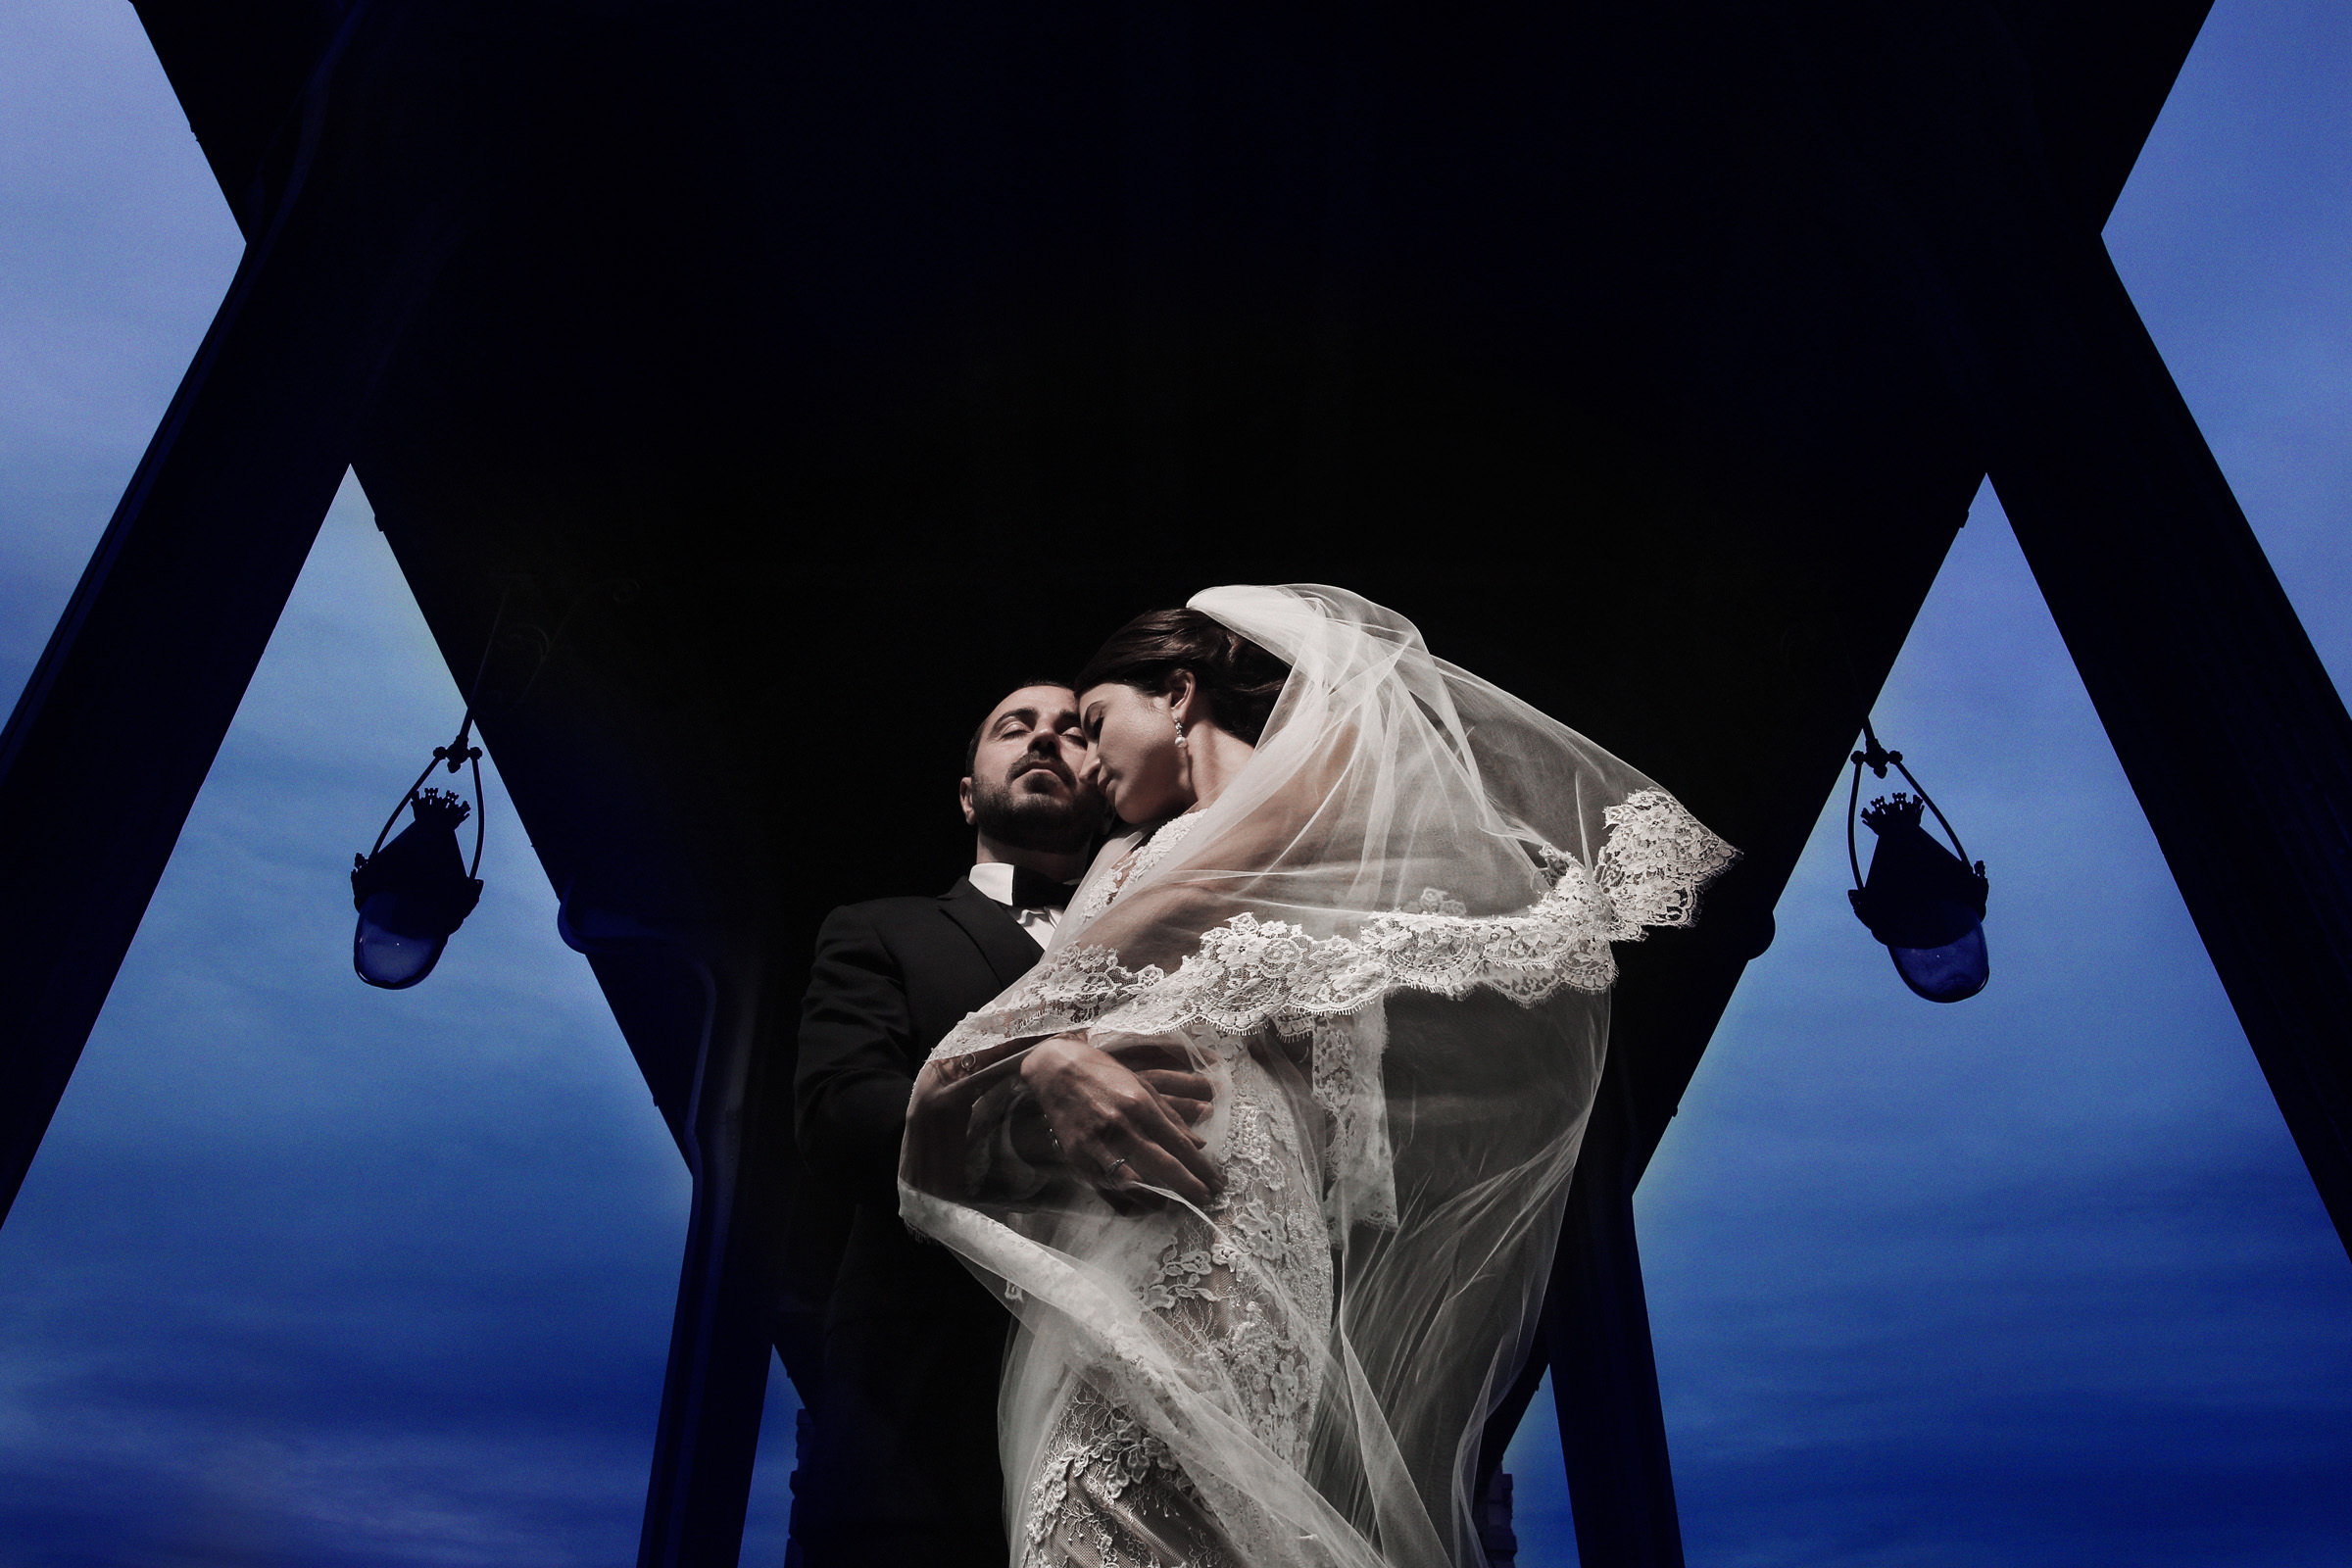 dramatic-bride-and-groom-portrait-by-franck-boutonnet-france-wedding-photographer